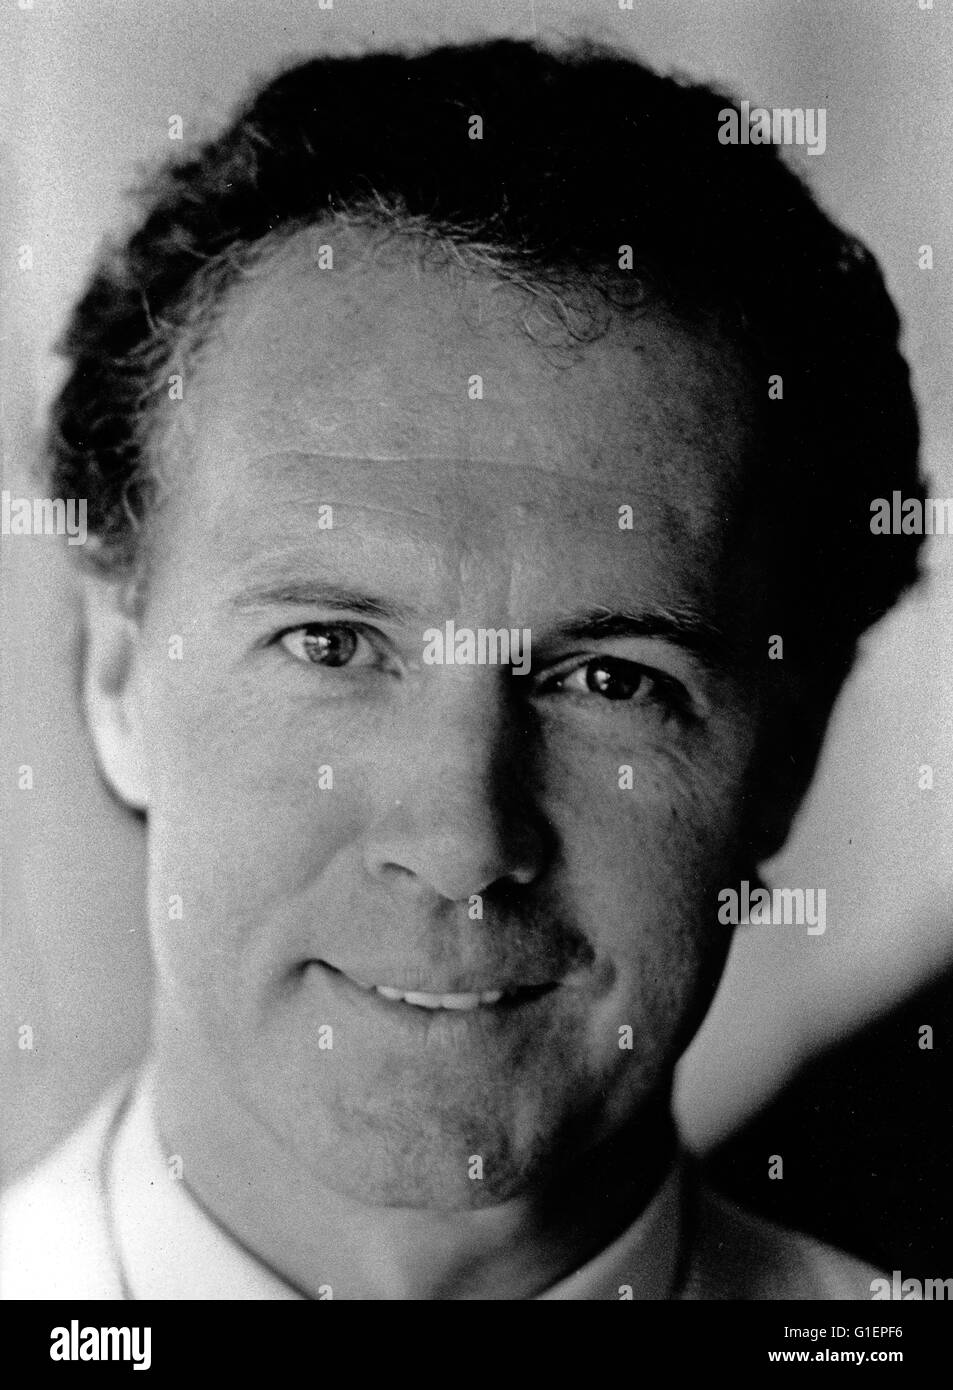 Beckenbauer Black and White Stock Photos & Images - Alamy